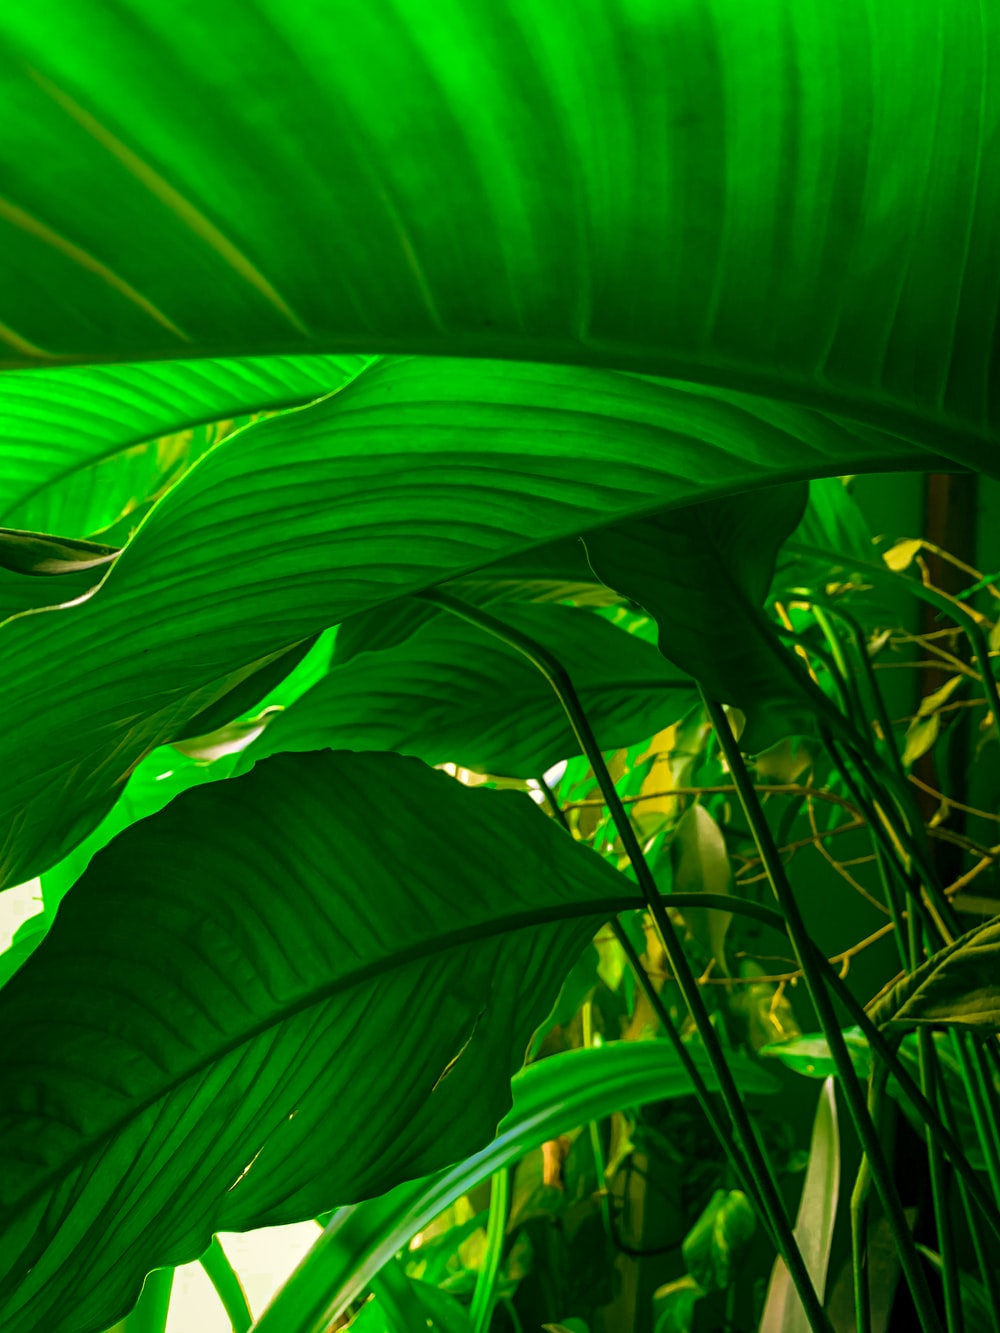 green banana leaf in close up photography